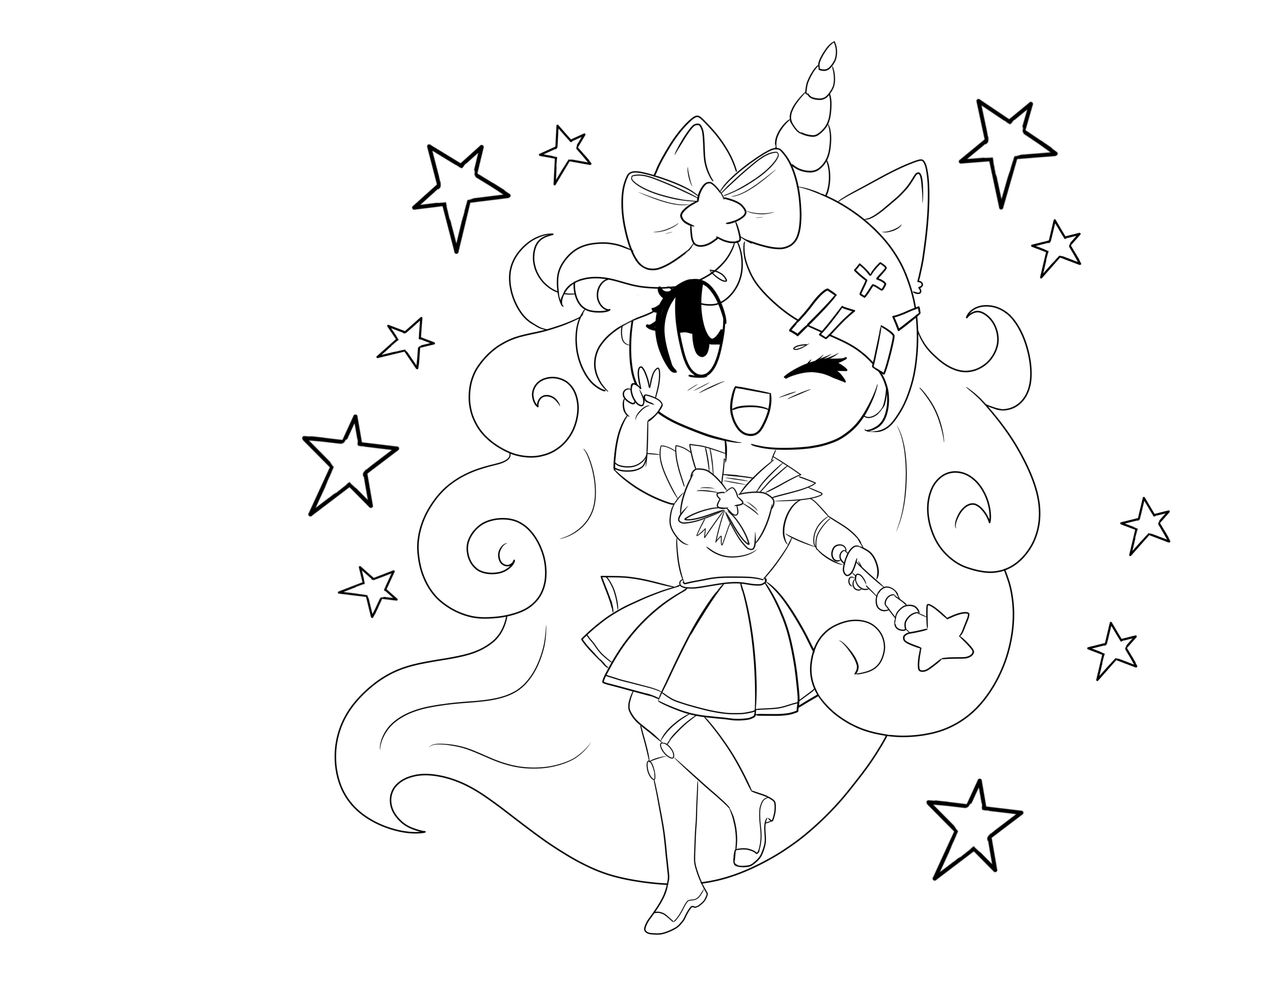 unicorn anime coloring pages coloring pages unicorn coloring pages online coloring coloring anime unicorn pages